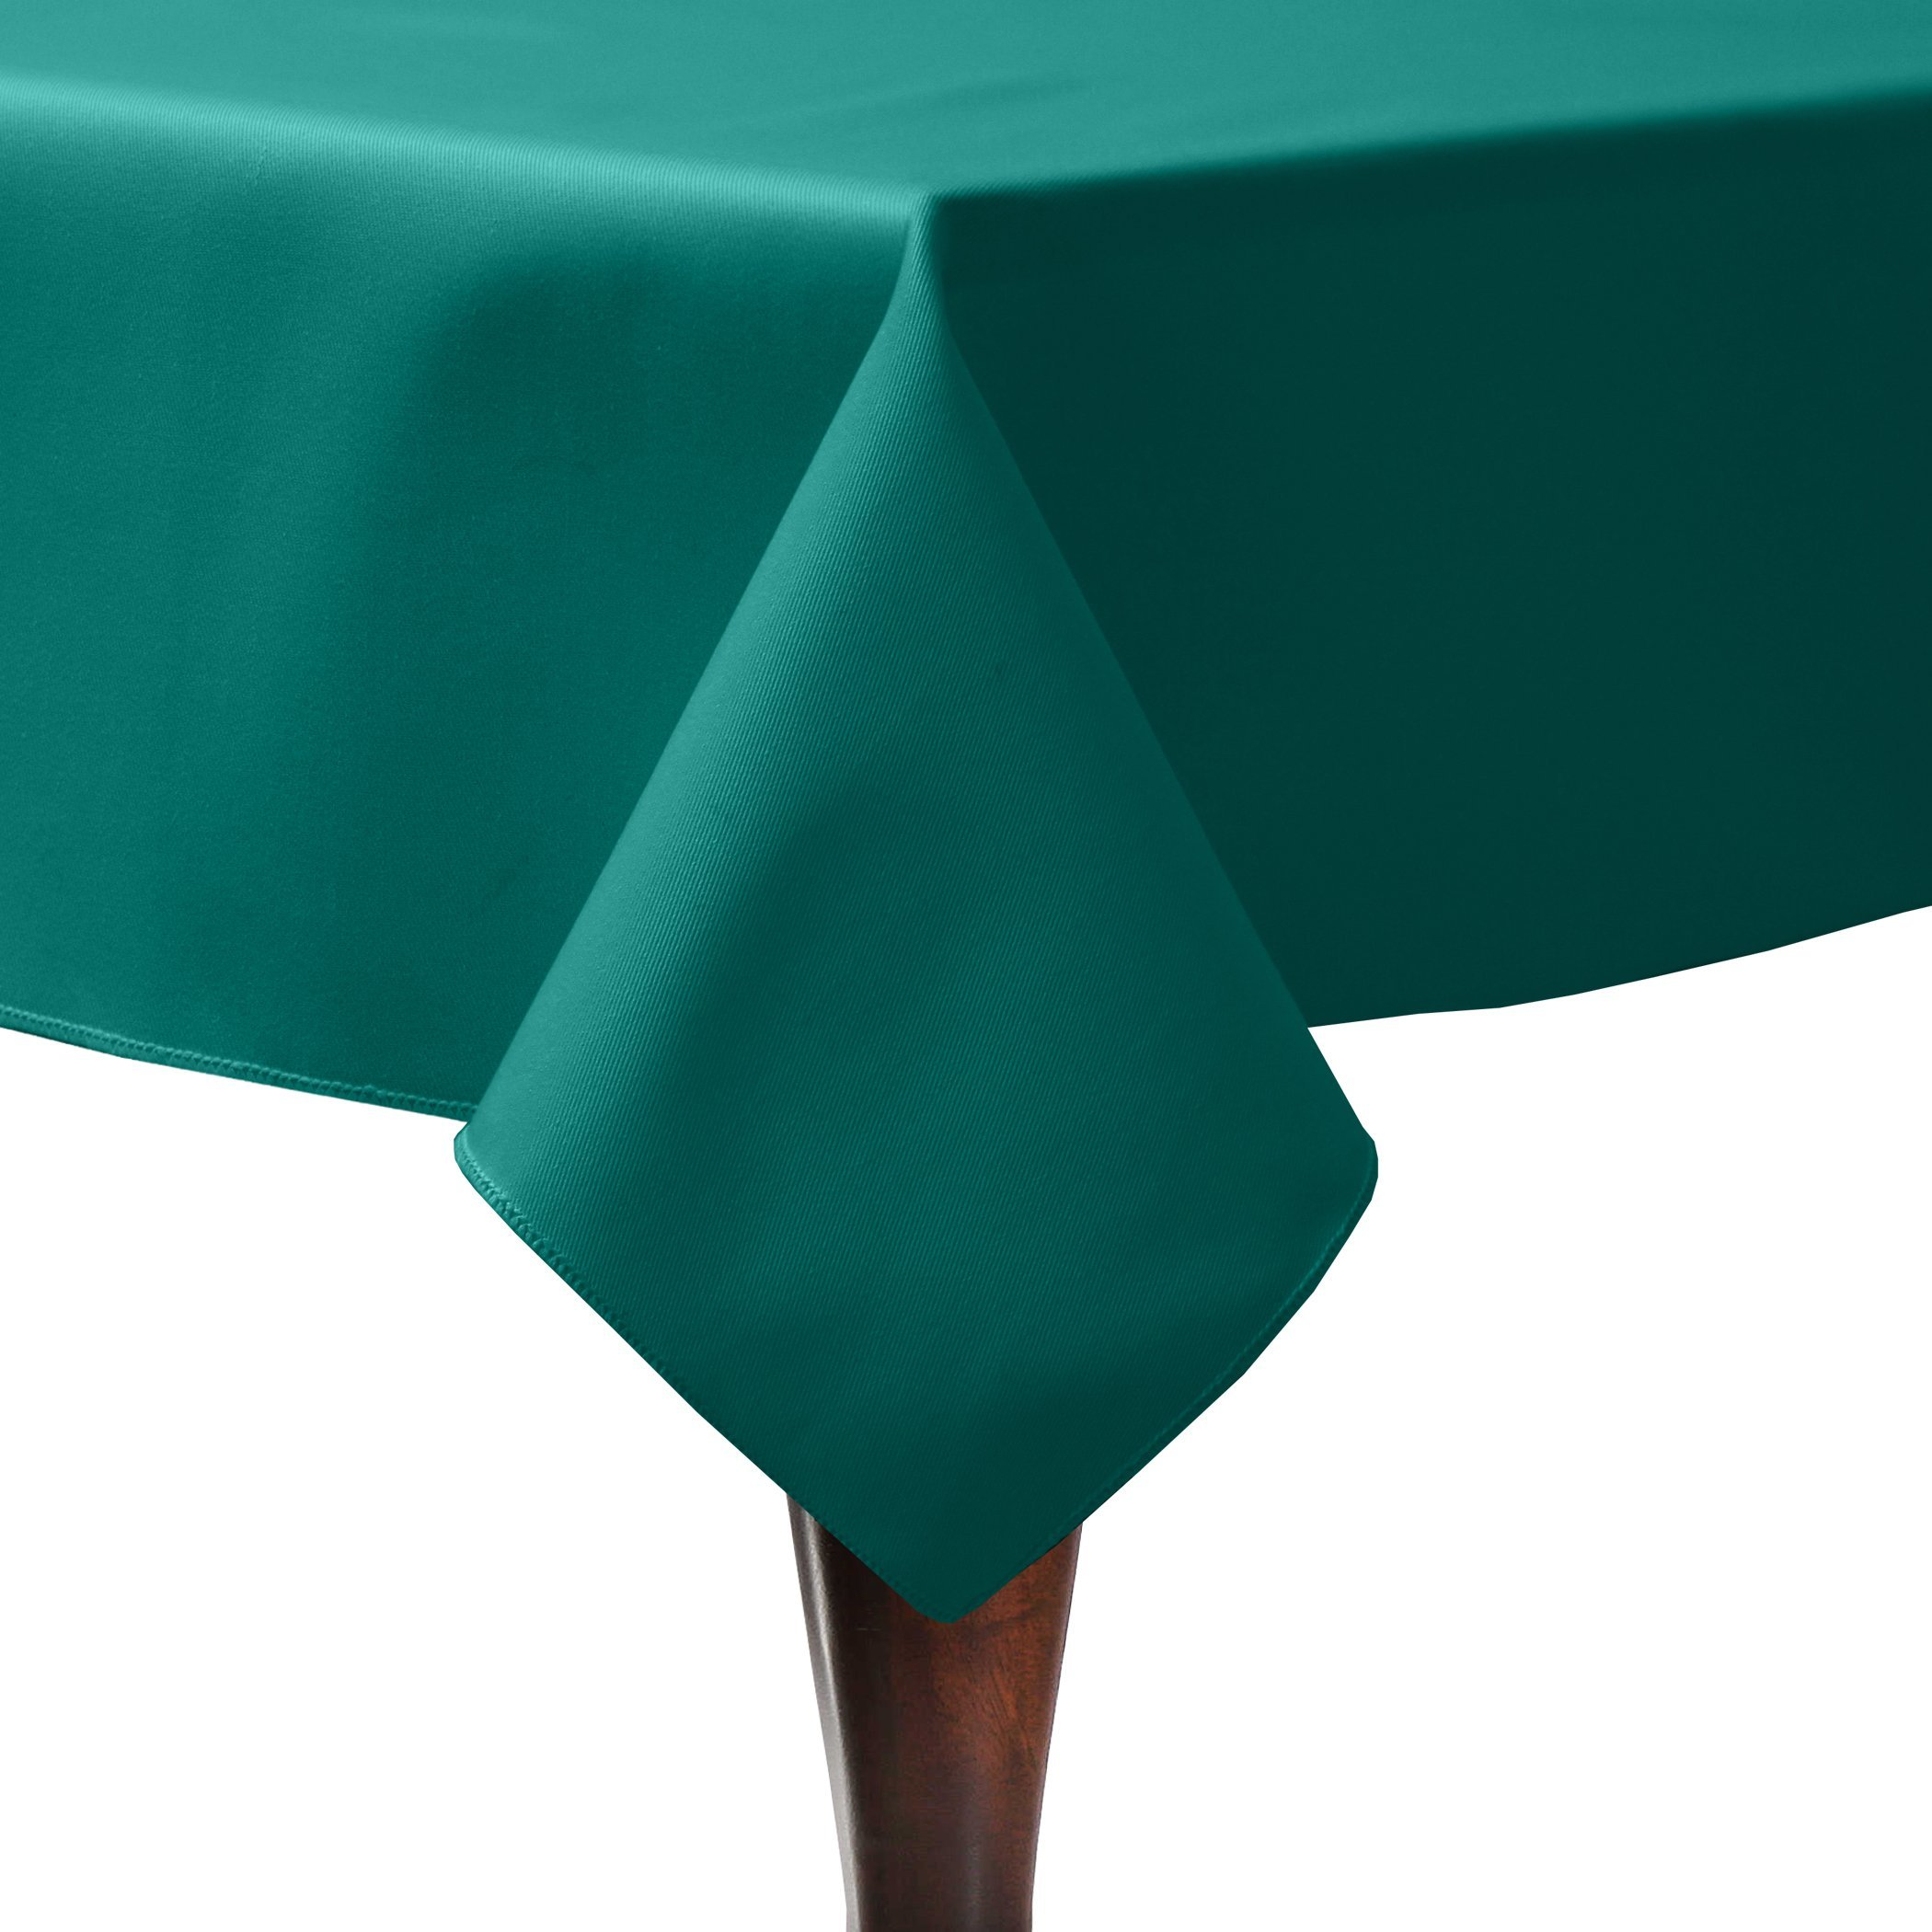 Ultimate Textile (10 Pack) Poly-cotton Twill 72 x 108-Inch Rectangular Tablecloth - for Restaurant and Catering, Hotel or Home Dining use, Teal by Ultimate Textile (Image #1)